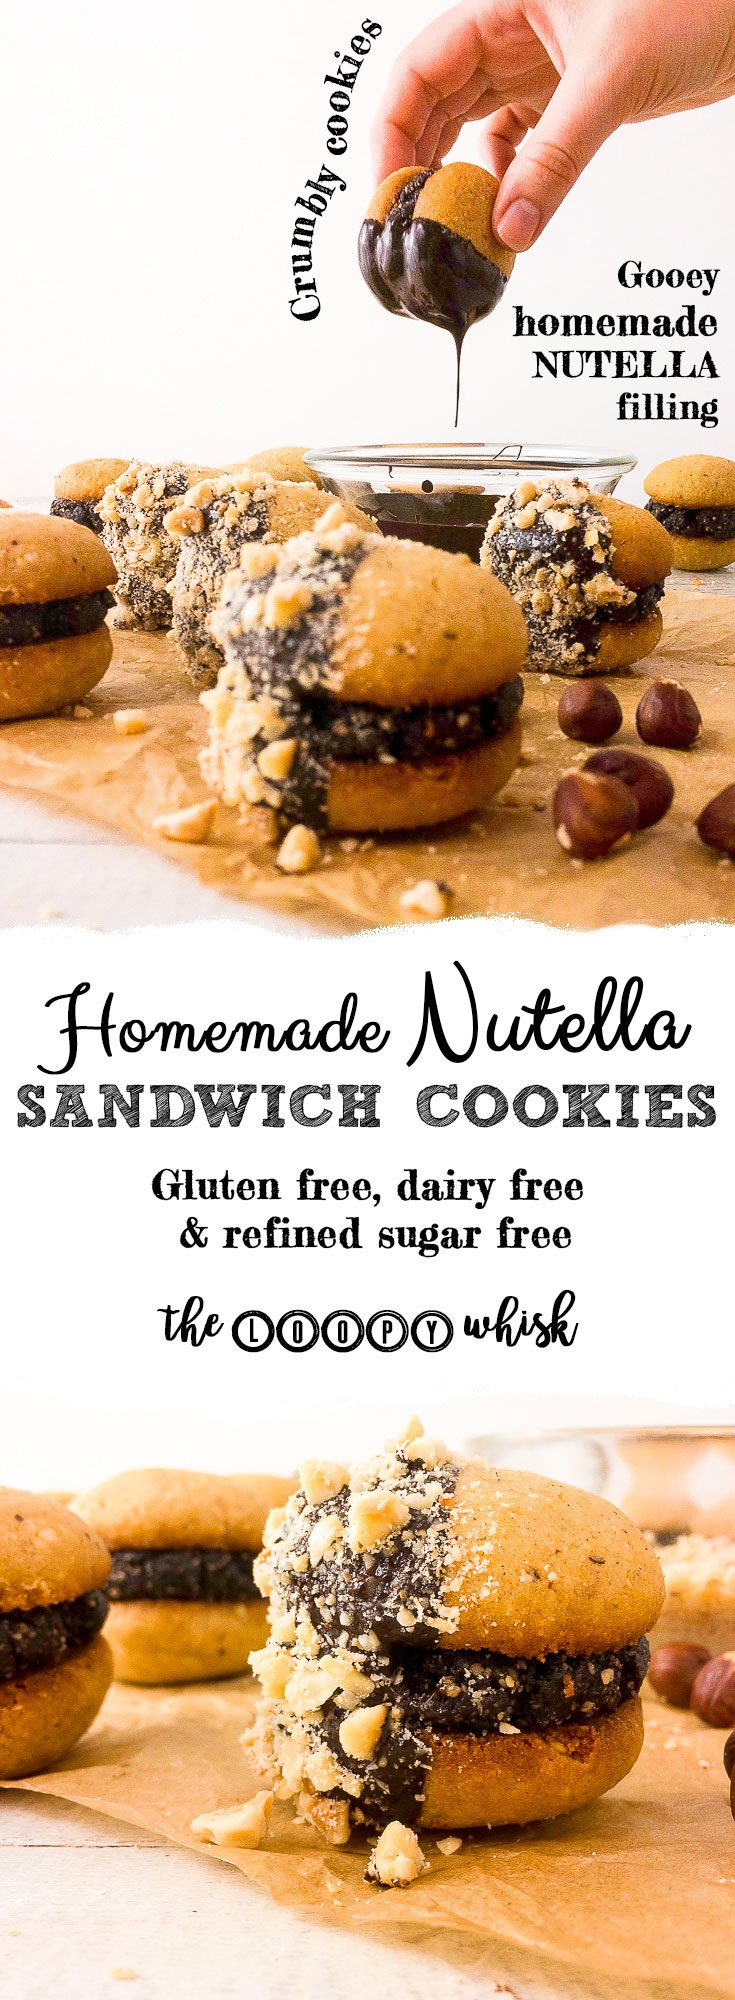 """Nutella"" Hazelnut Chocolate Sandwich Cookies - Gooey homemade Nutella filling joins crumbly hazelnut cookies in these sandwich cookies. Because two cookies are always better than one, and who in their right mind would ever say no to homemade Nutella?"